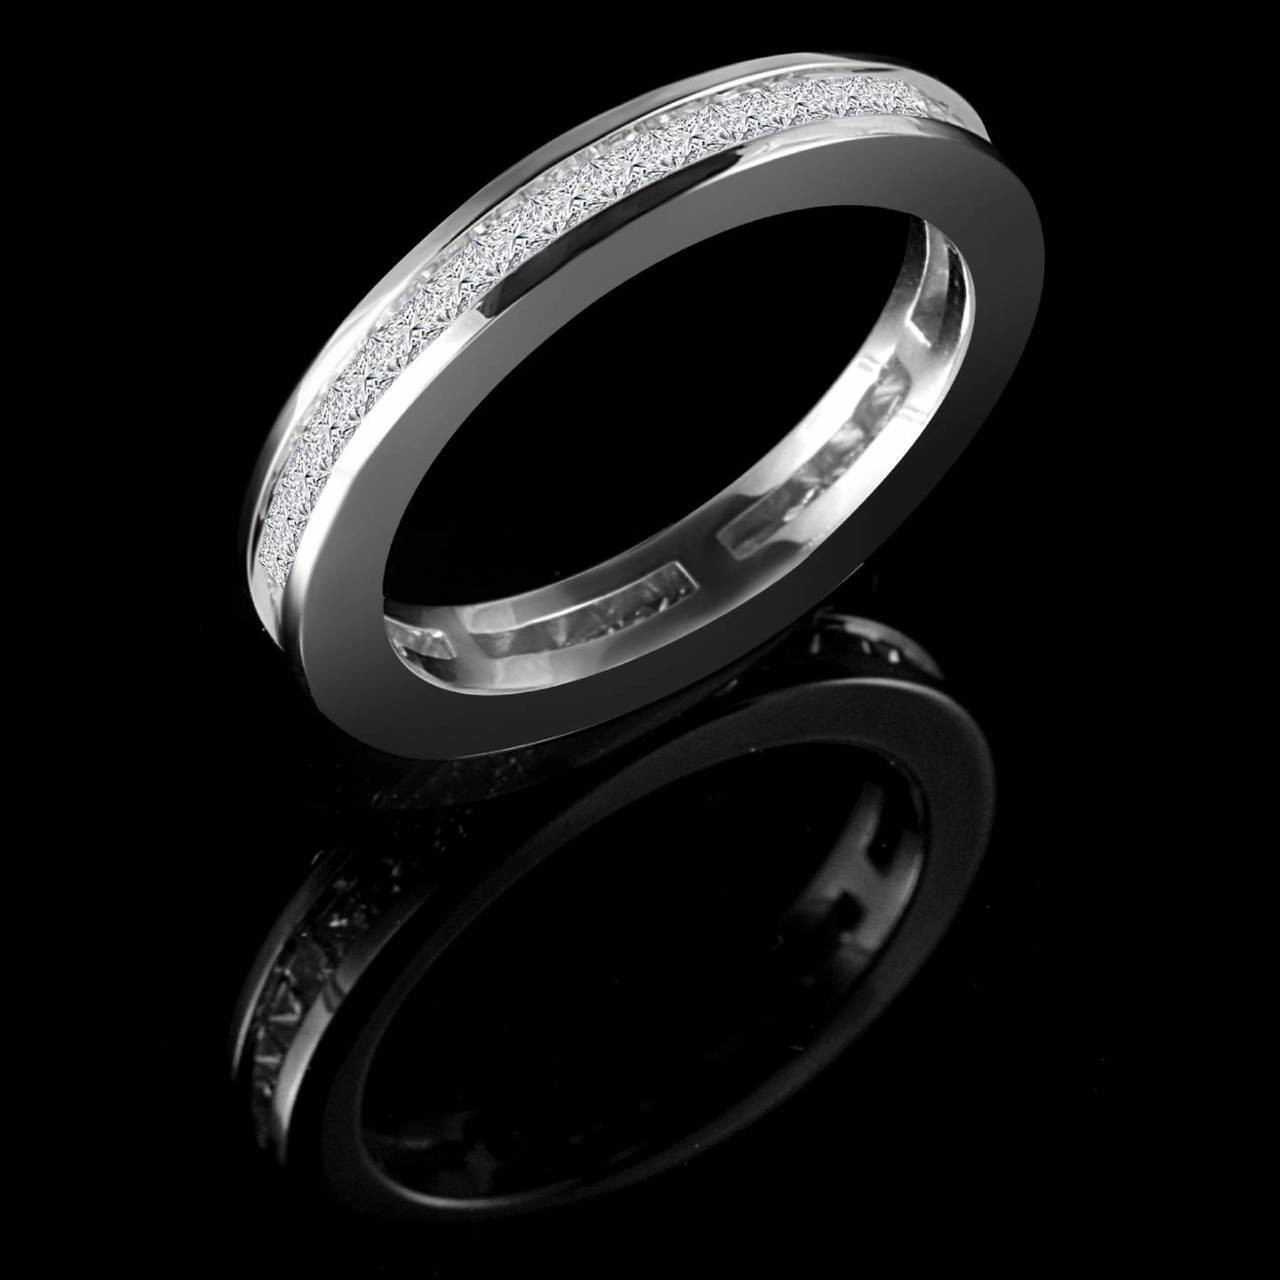 Full Bands: Full Eternity Wedding Band